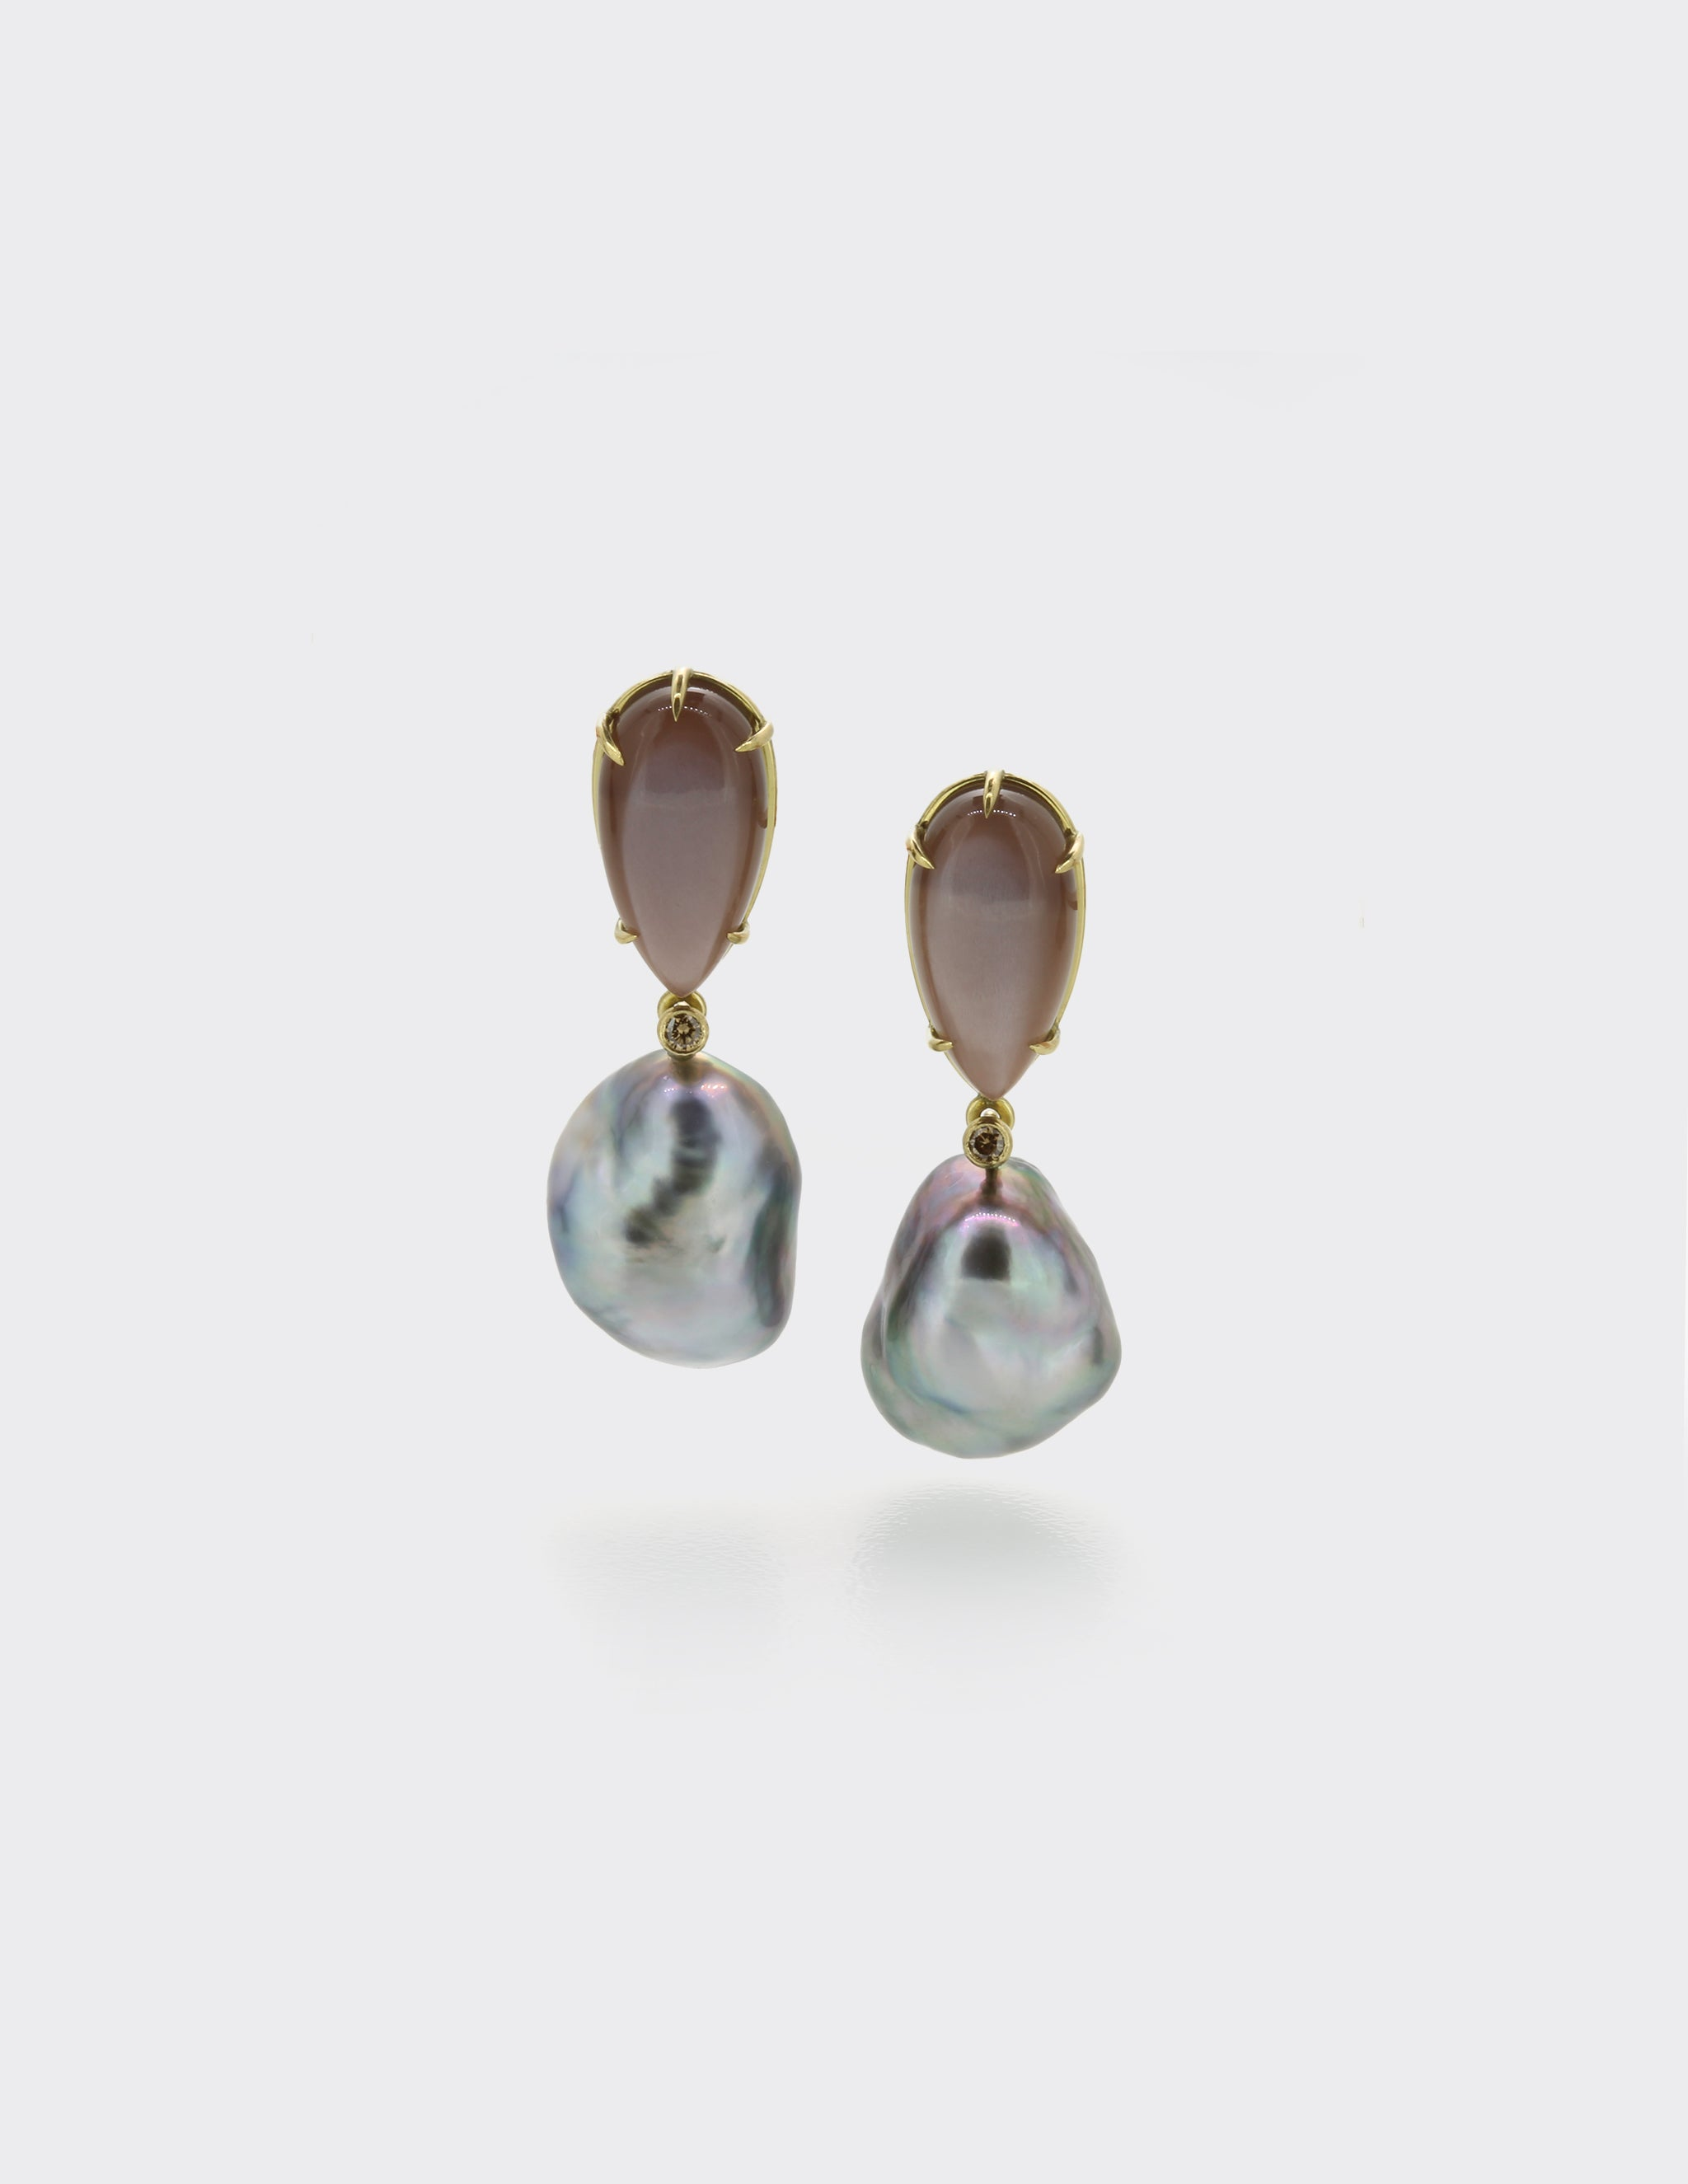 Moonstone and keshi pearl ear drops